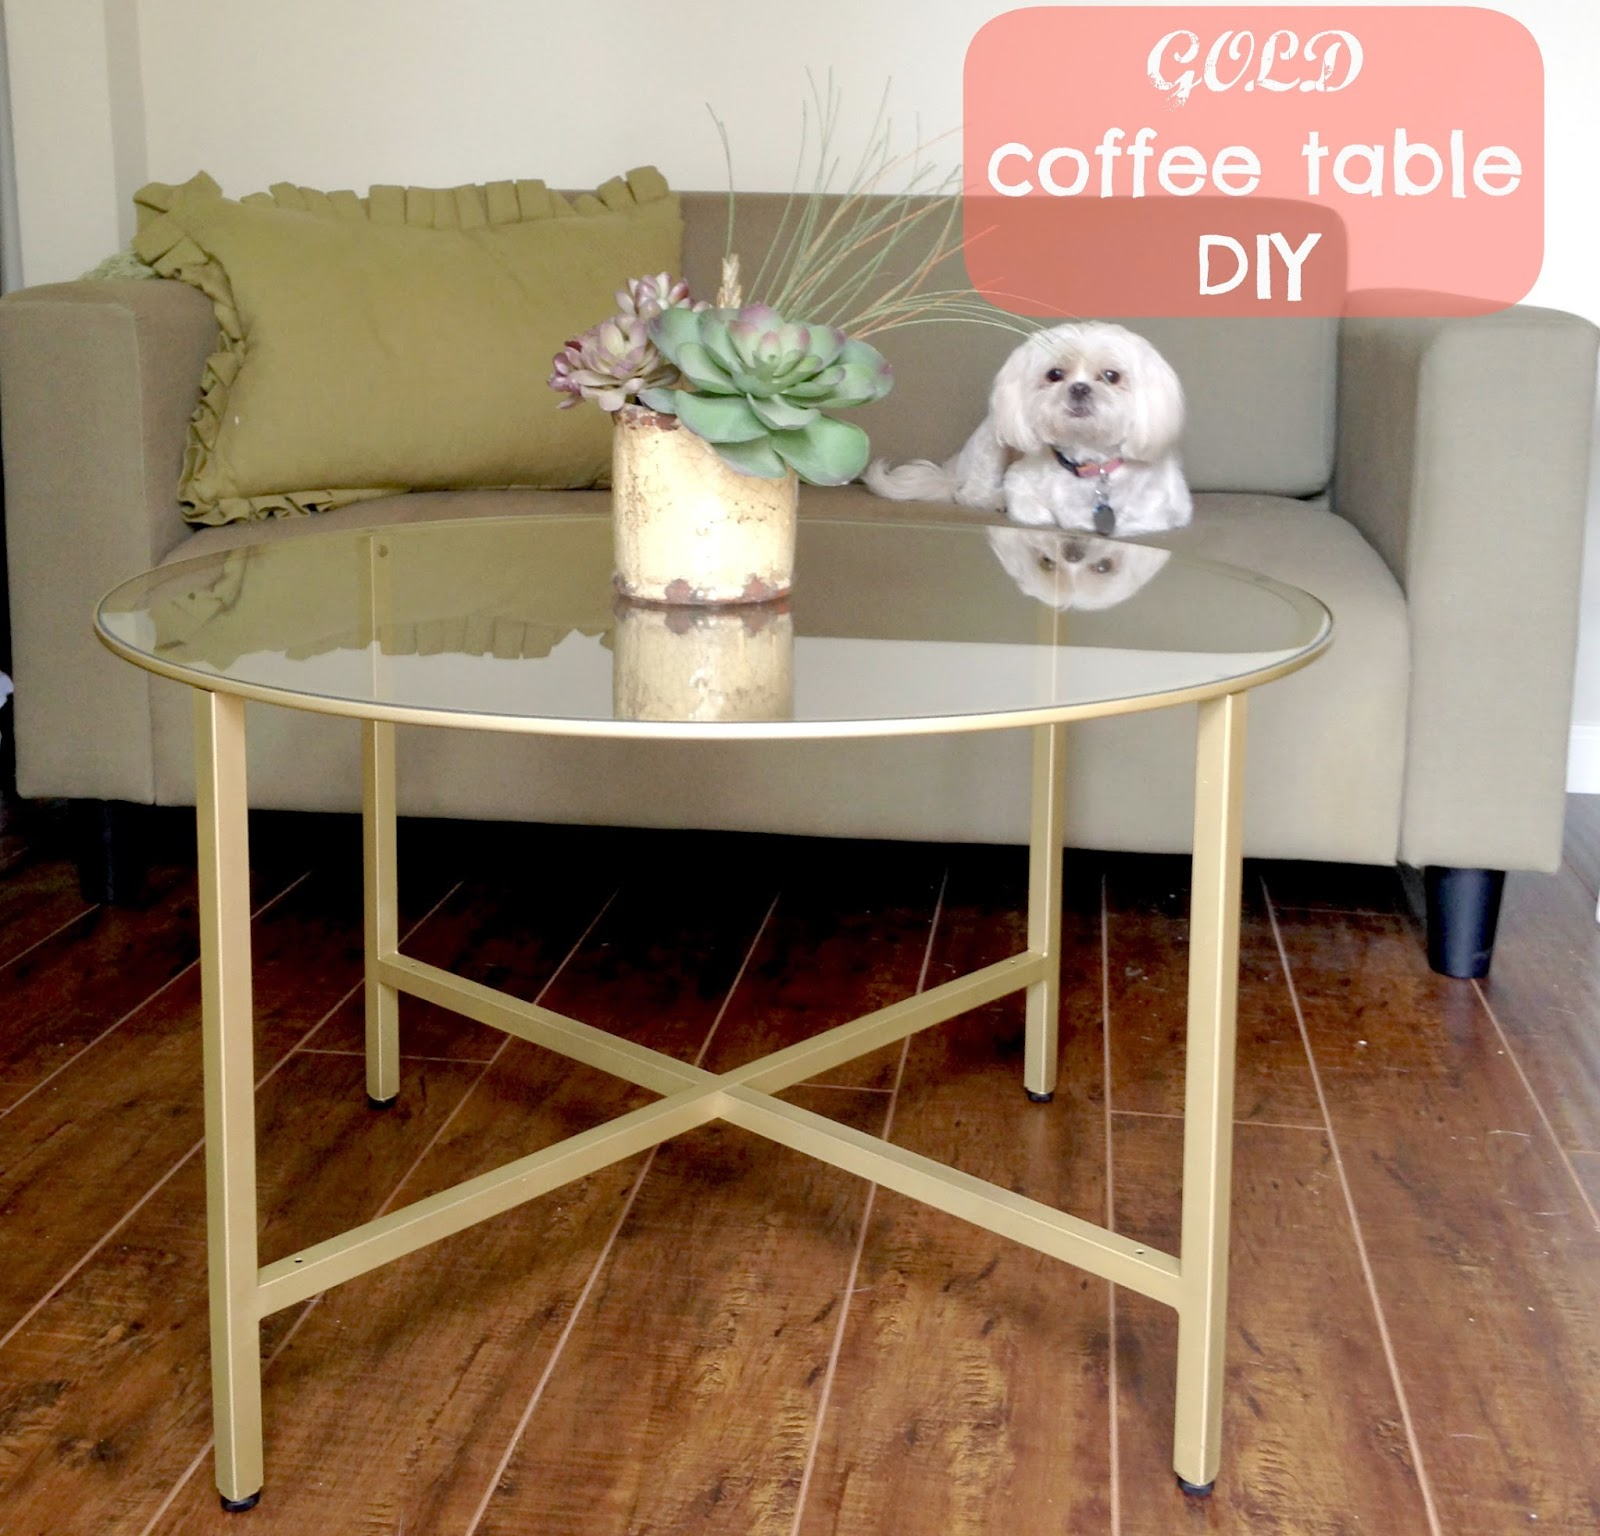 Gold Coffee Table DIY // The Twisted Horn